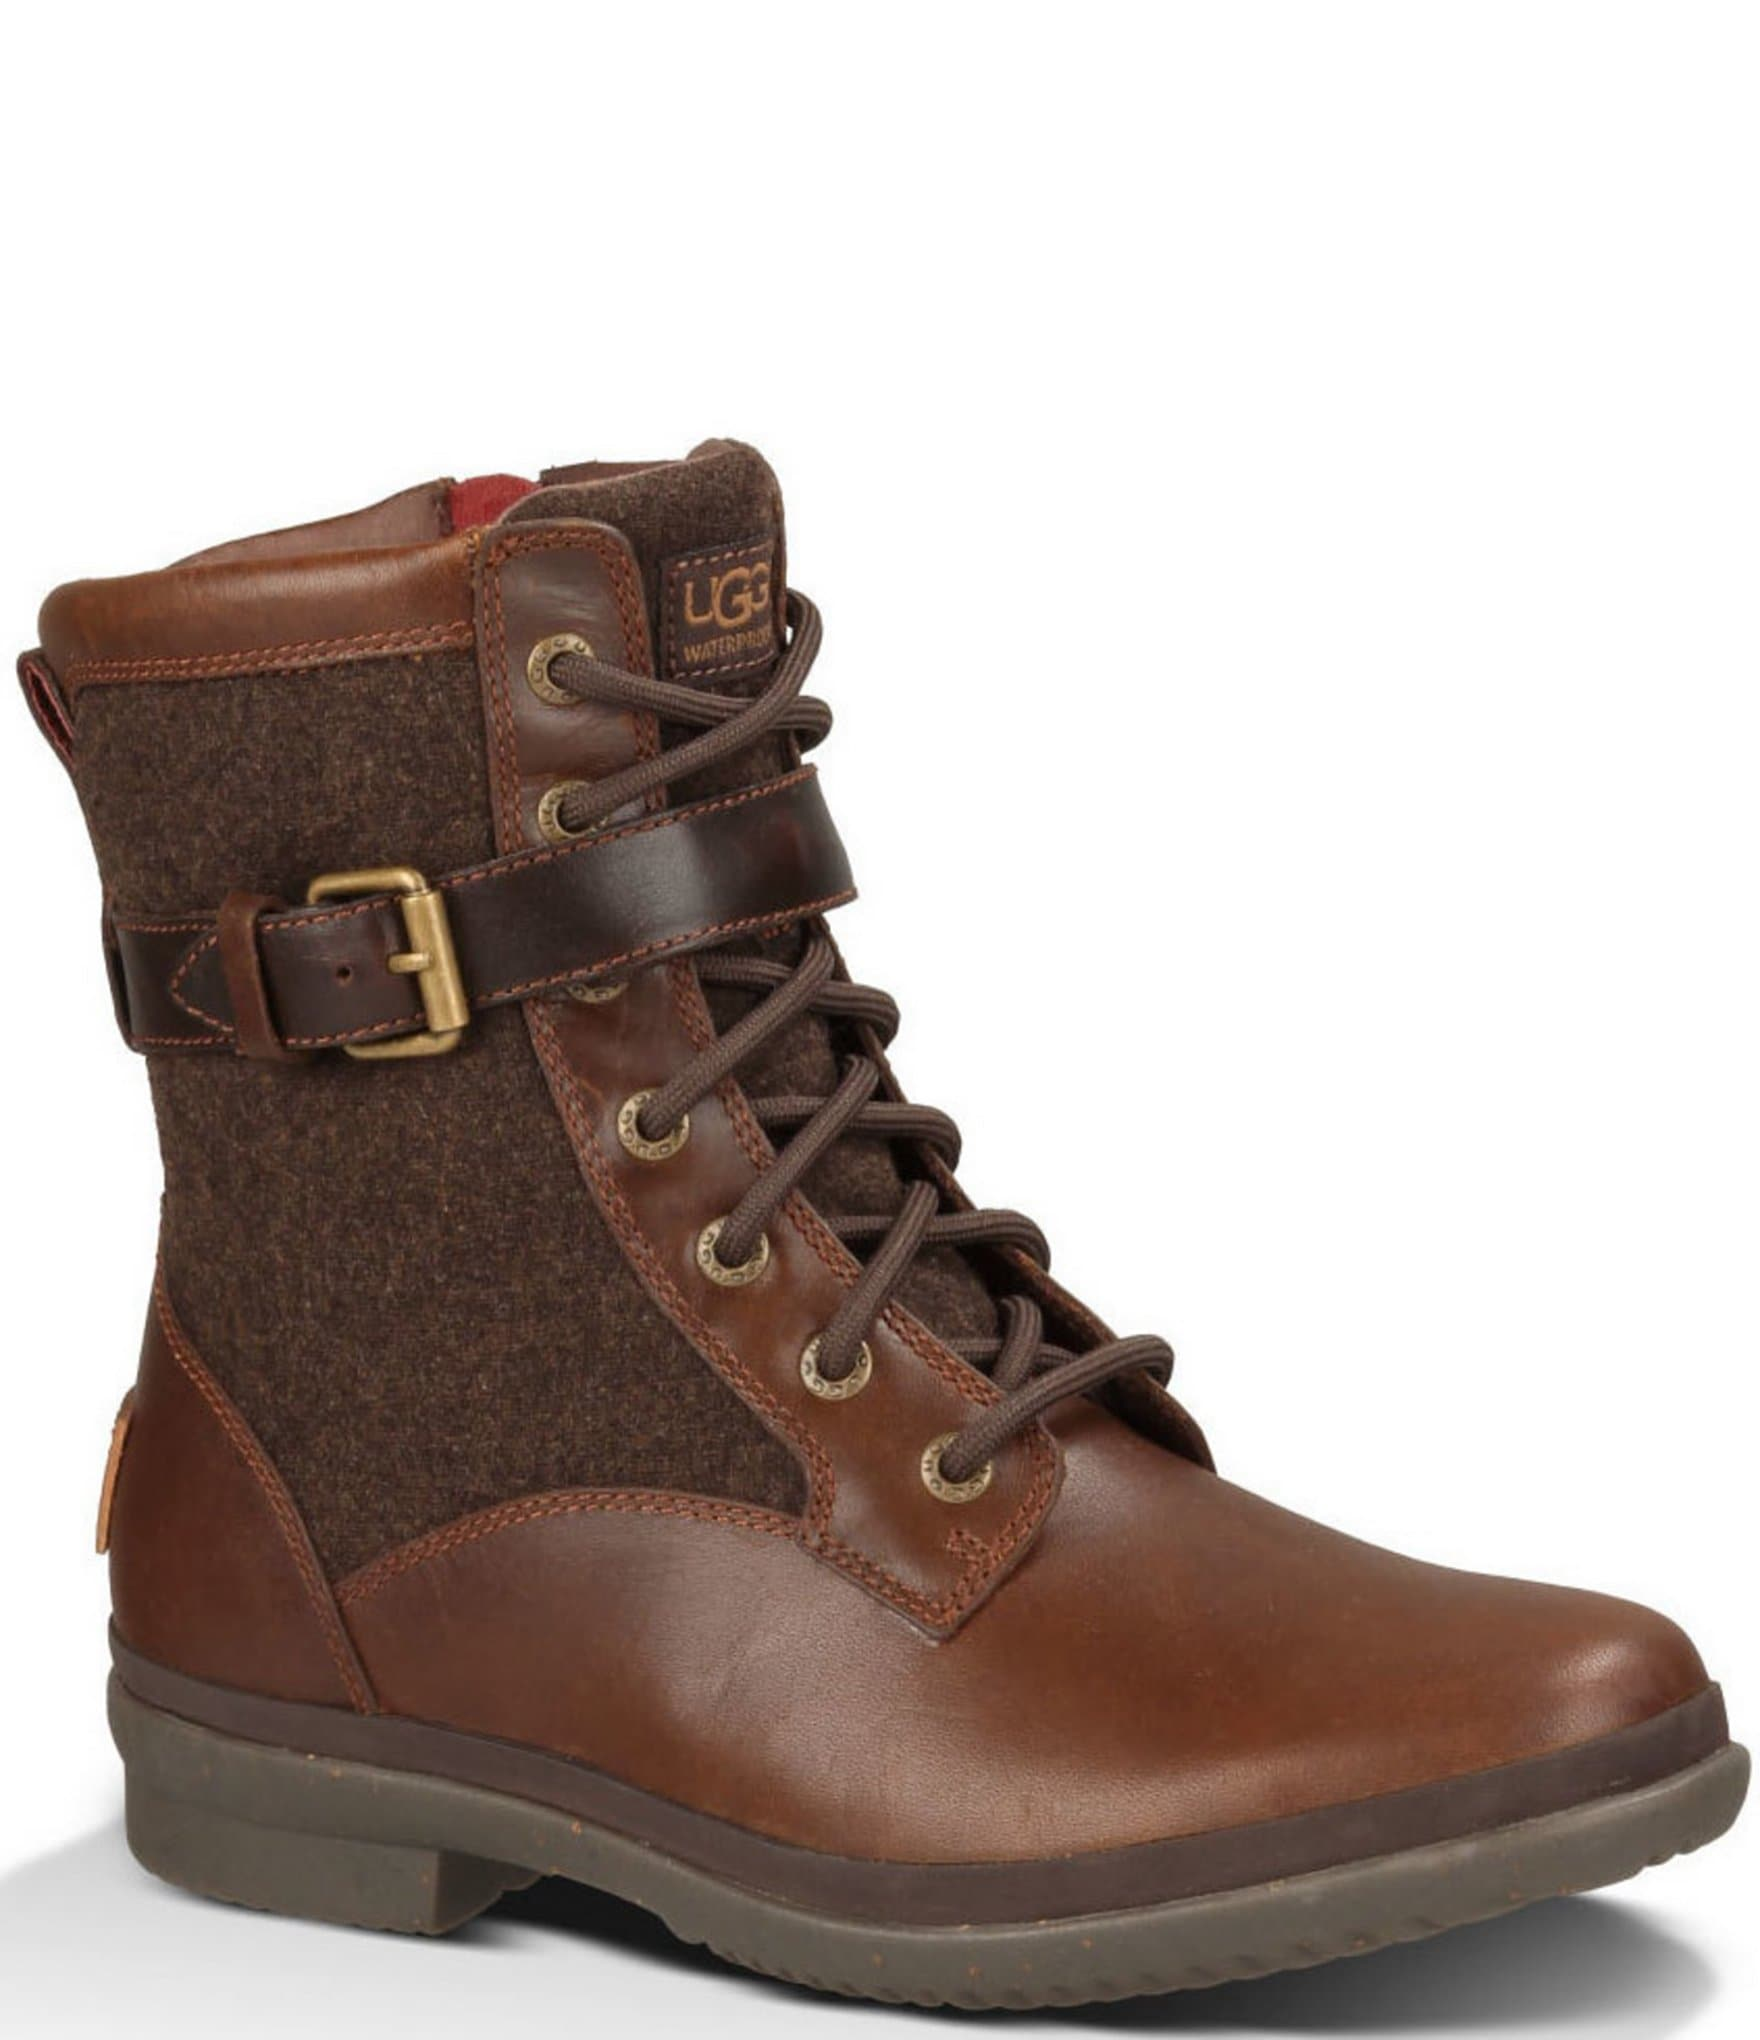 6a89e6c7ce0 UGG® Women's Kesey Waterproof Leather and Textile Boots